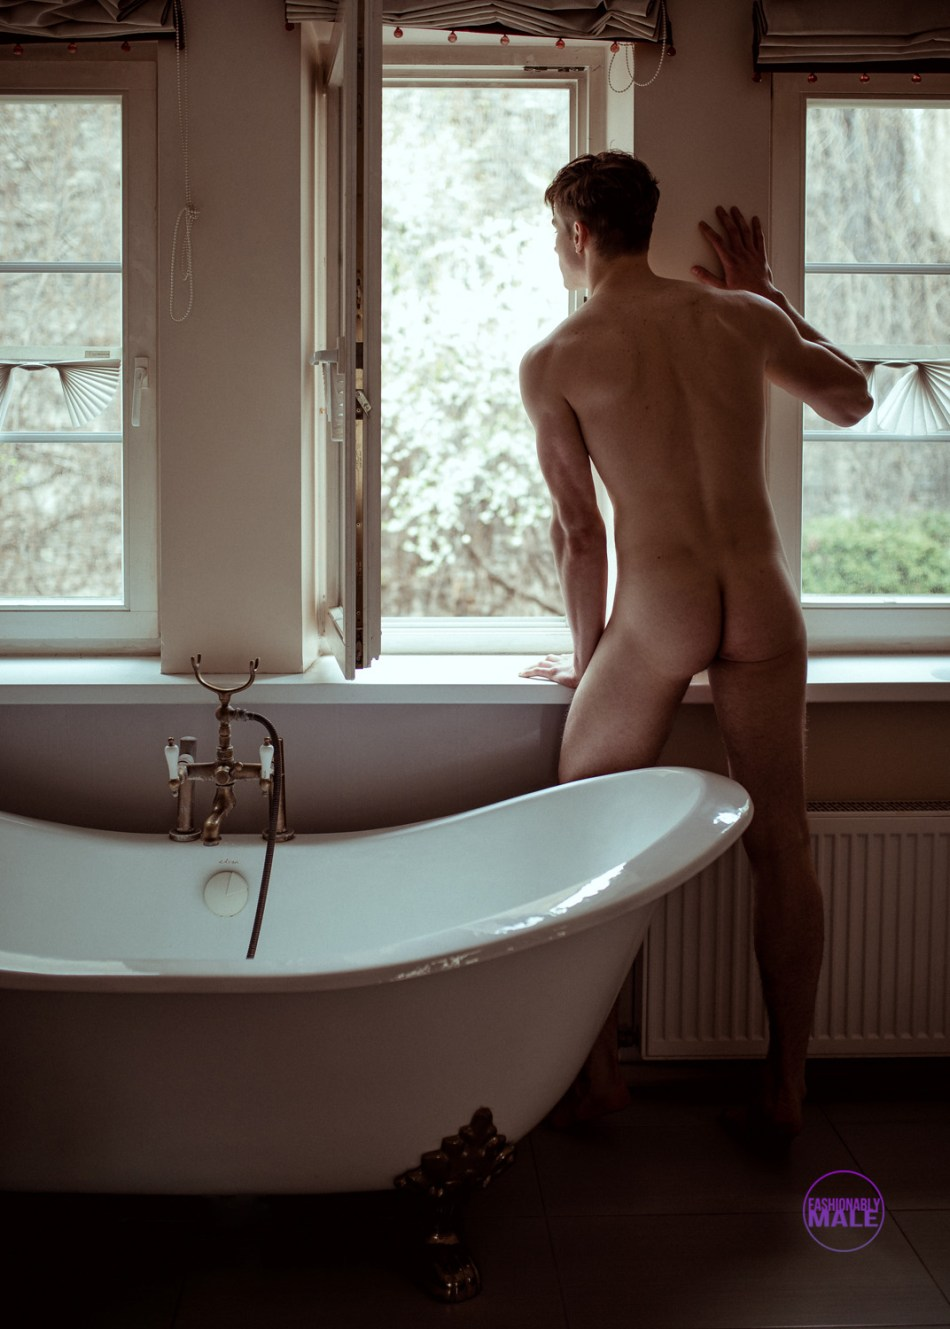 Photographer Dmitry Zemenkov Shares Intimate Portrait with Edvinas Pètra